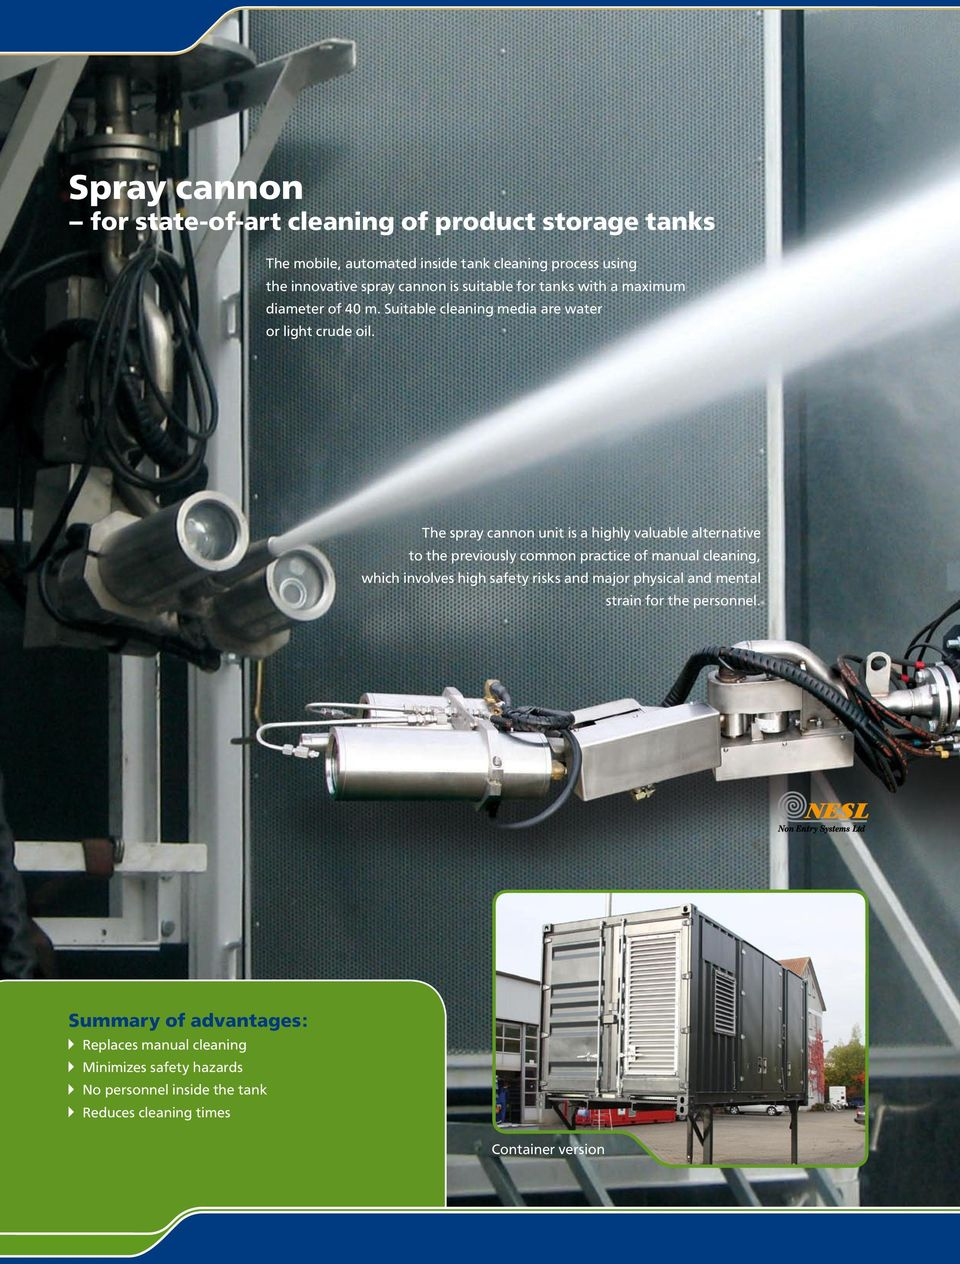 The spray cannon unit is a highly valuable alternative to the previously common practice of manual cleaning, which involves high safety risks and